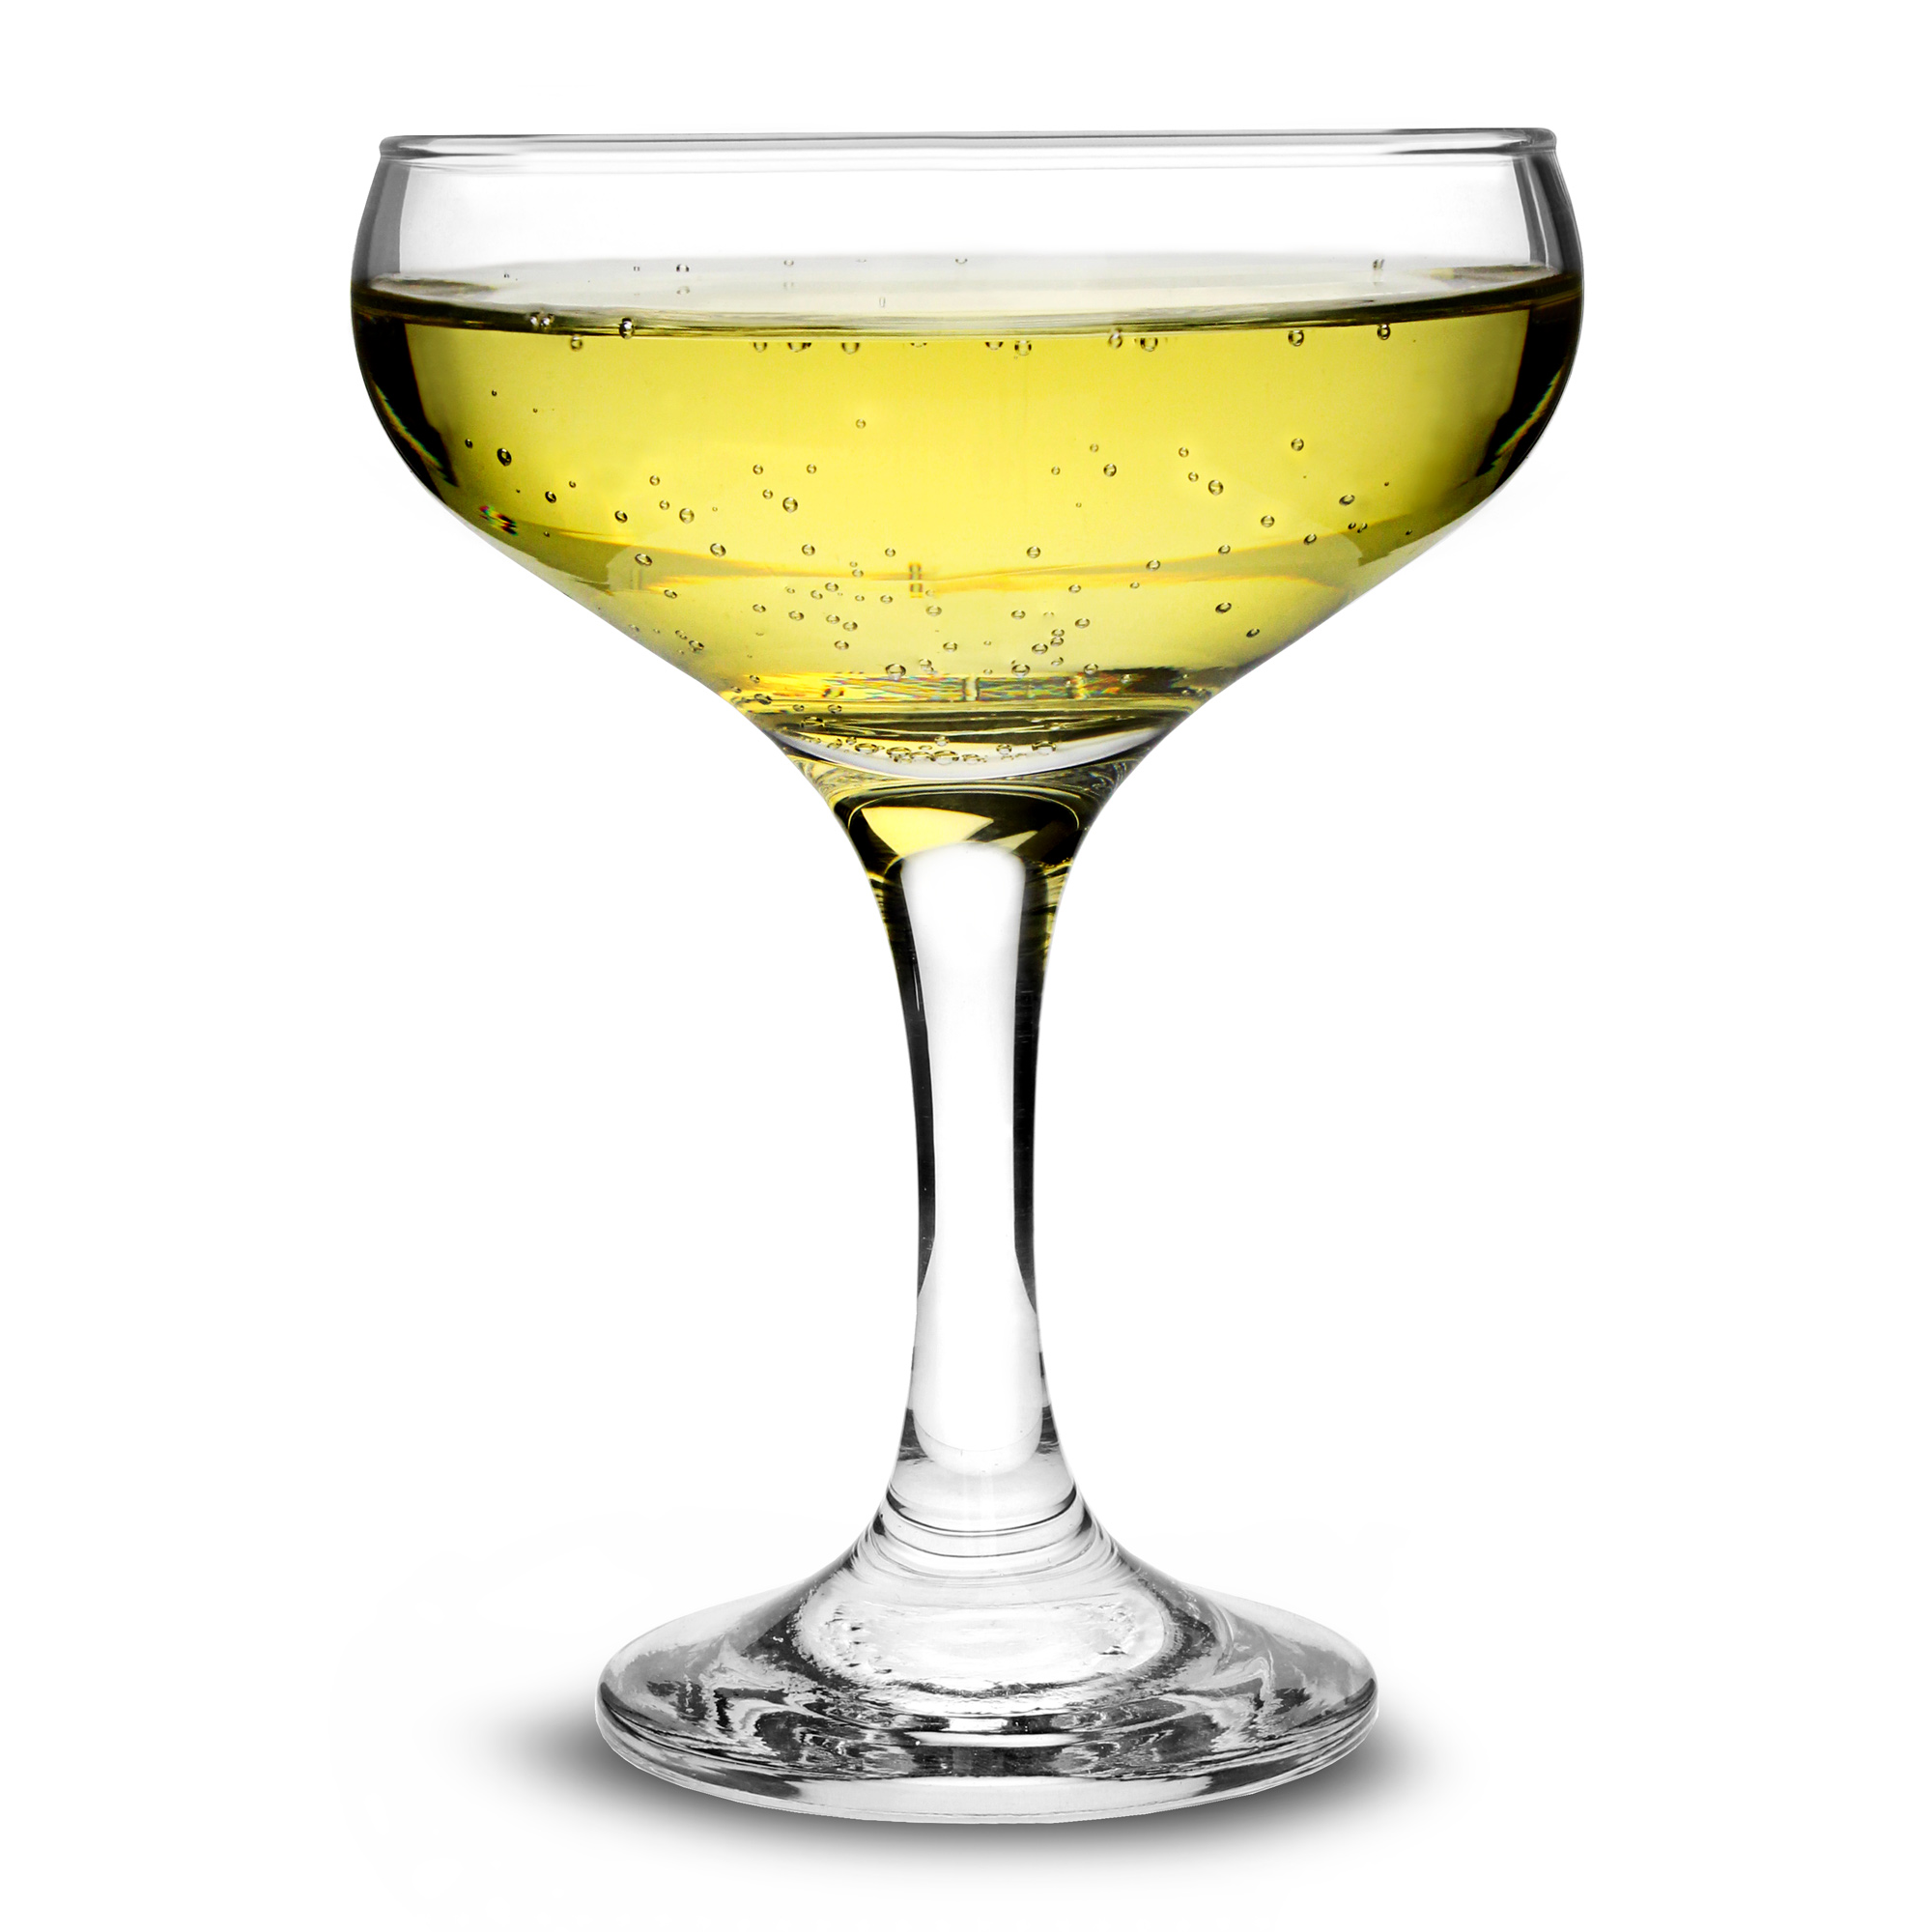 city champagne coupe glass 20ml margarita cocktail saucer. Black Bedroom Furniture Sets. Home Design Ideas